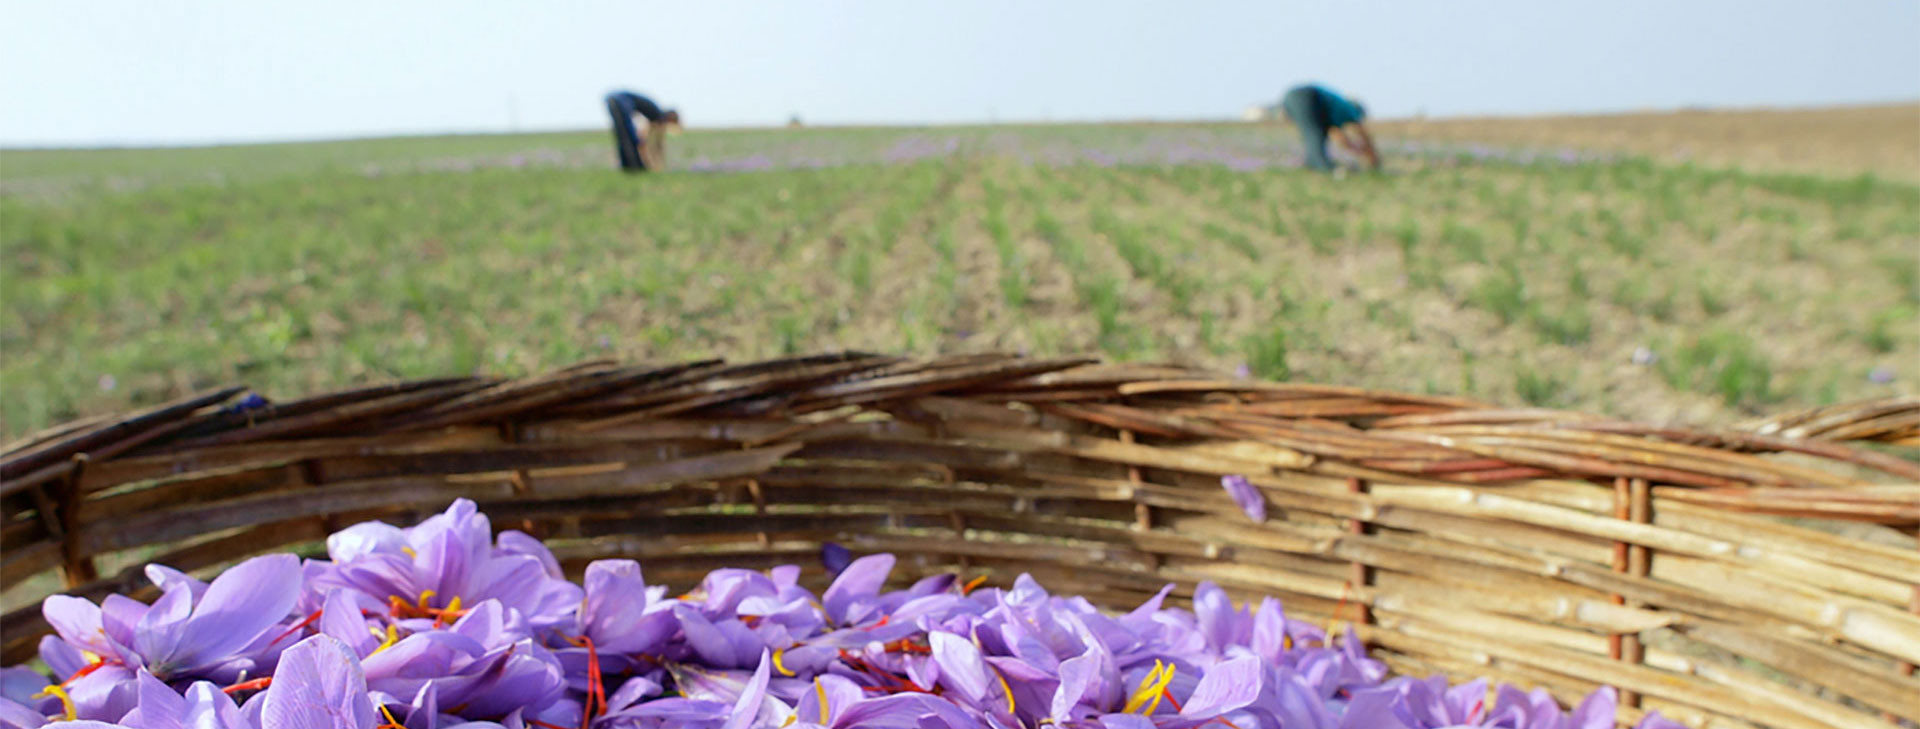 Wholesale Saffron Bulbs